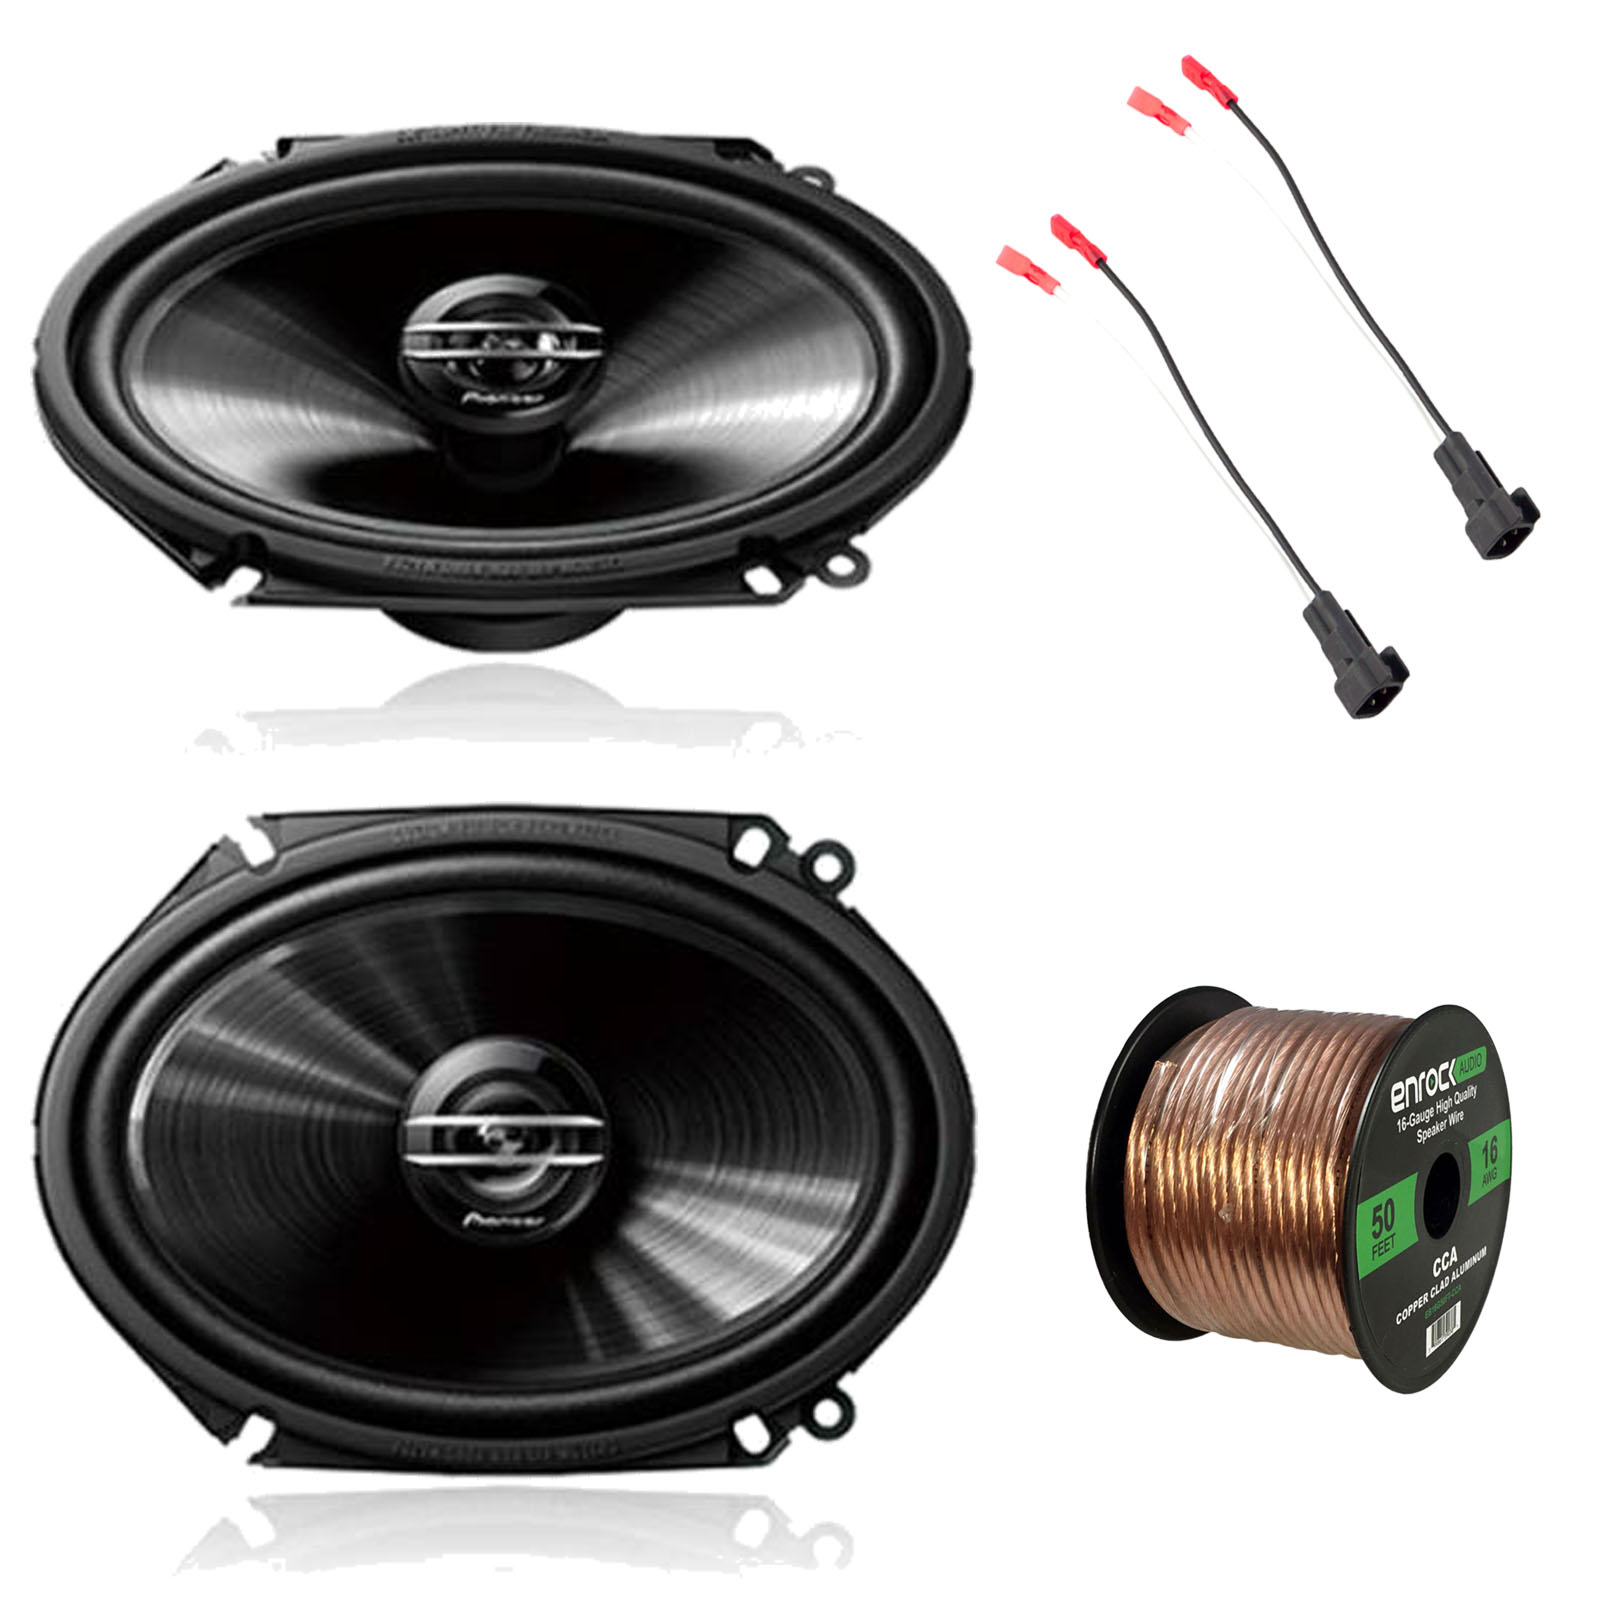 "2x Pioneer TS-G6820S 250 Watt 6x 8"" 2-Way Coaxial Car Audio Speakers, 2x Enrock EFDSH98UP Speaker Adapter for Select 98' and up Ford Vehicles (pair), Enrock Audio 16-Gauge 50 Foot Speaker Wire"